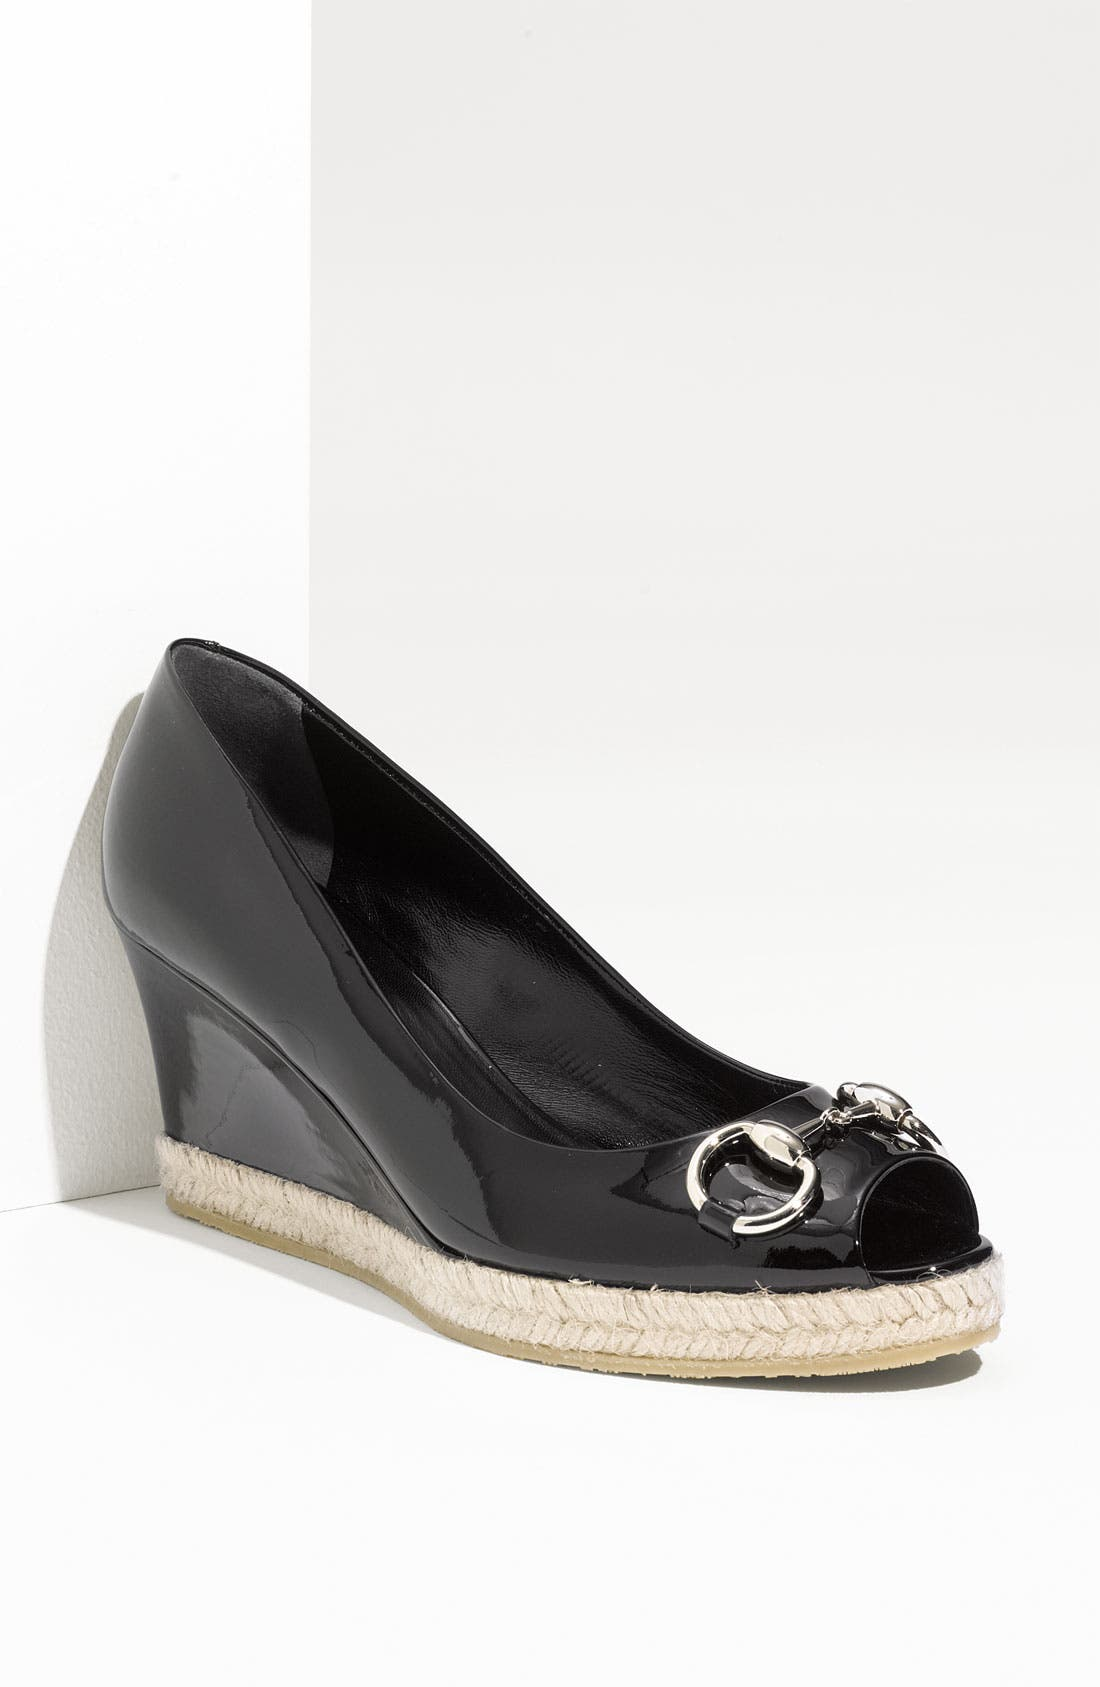 Main Image - Gucci Patent Leather Wedge Pump